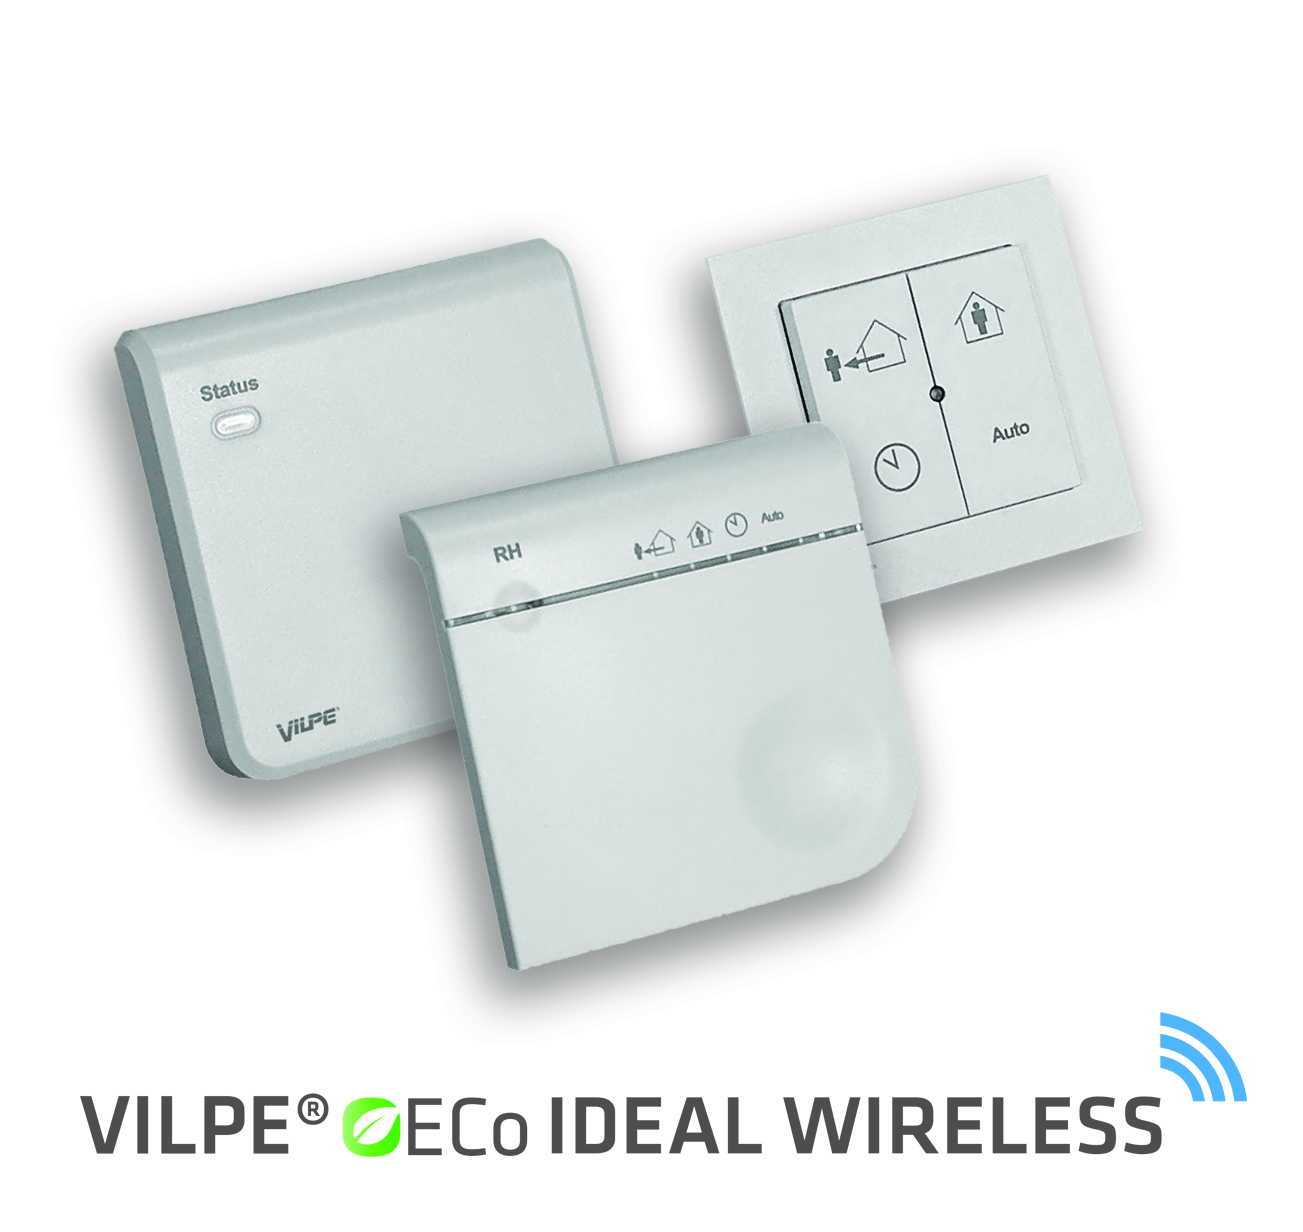 Vilpe-ECo-Ideal pakket